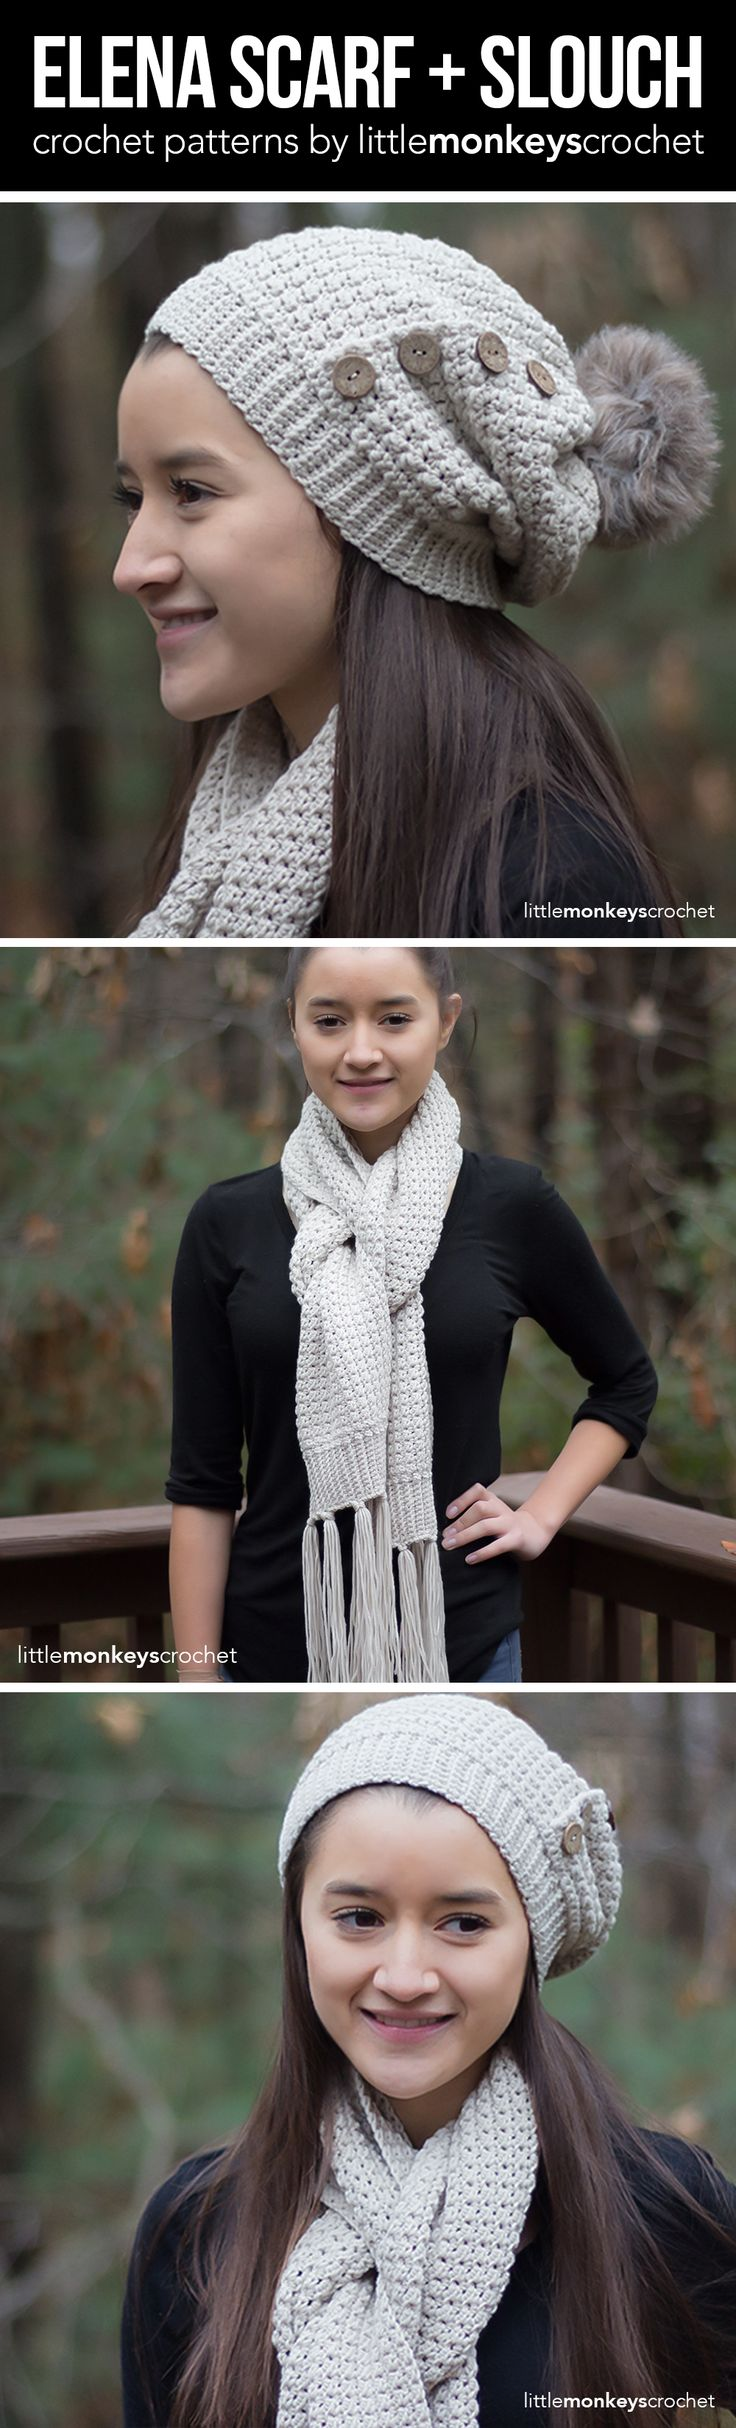 Elena Scarf and Slouch Hat Crochet Pattern Set   Free classic winter scarf and slouchy beanie hat crochet patterns by Little Monkeys Crochet